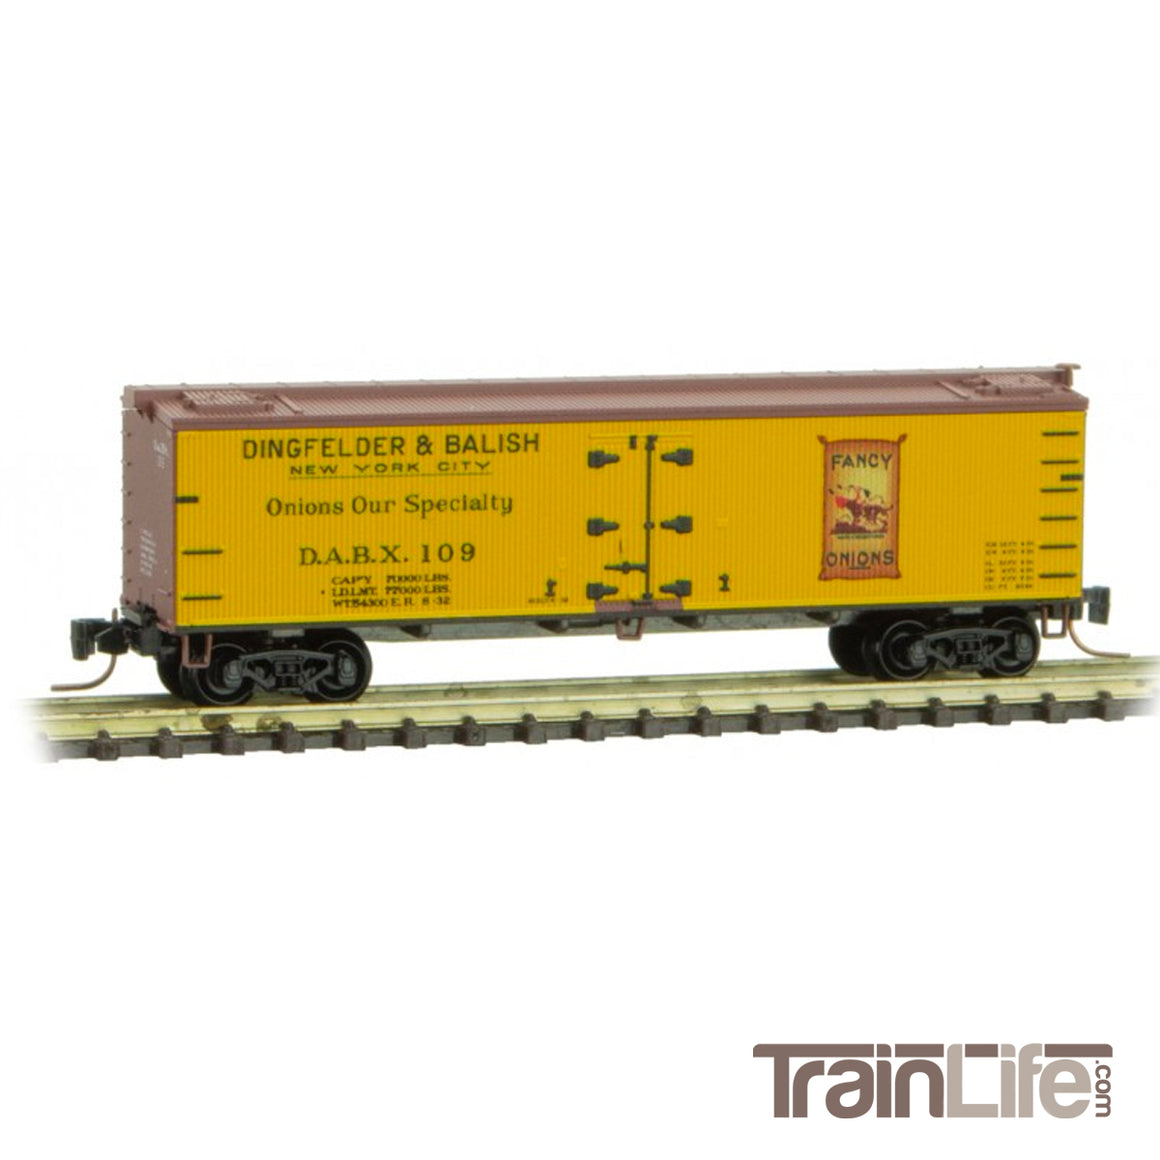 N Scale: 40-Foot Wood Reefer - Dingfelder & Balish Onions